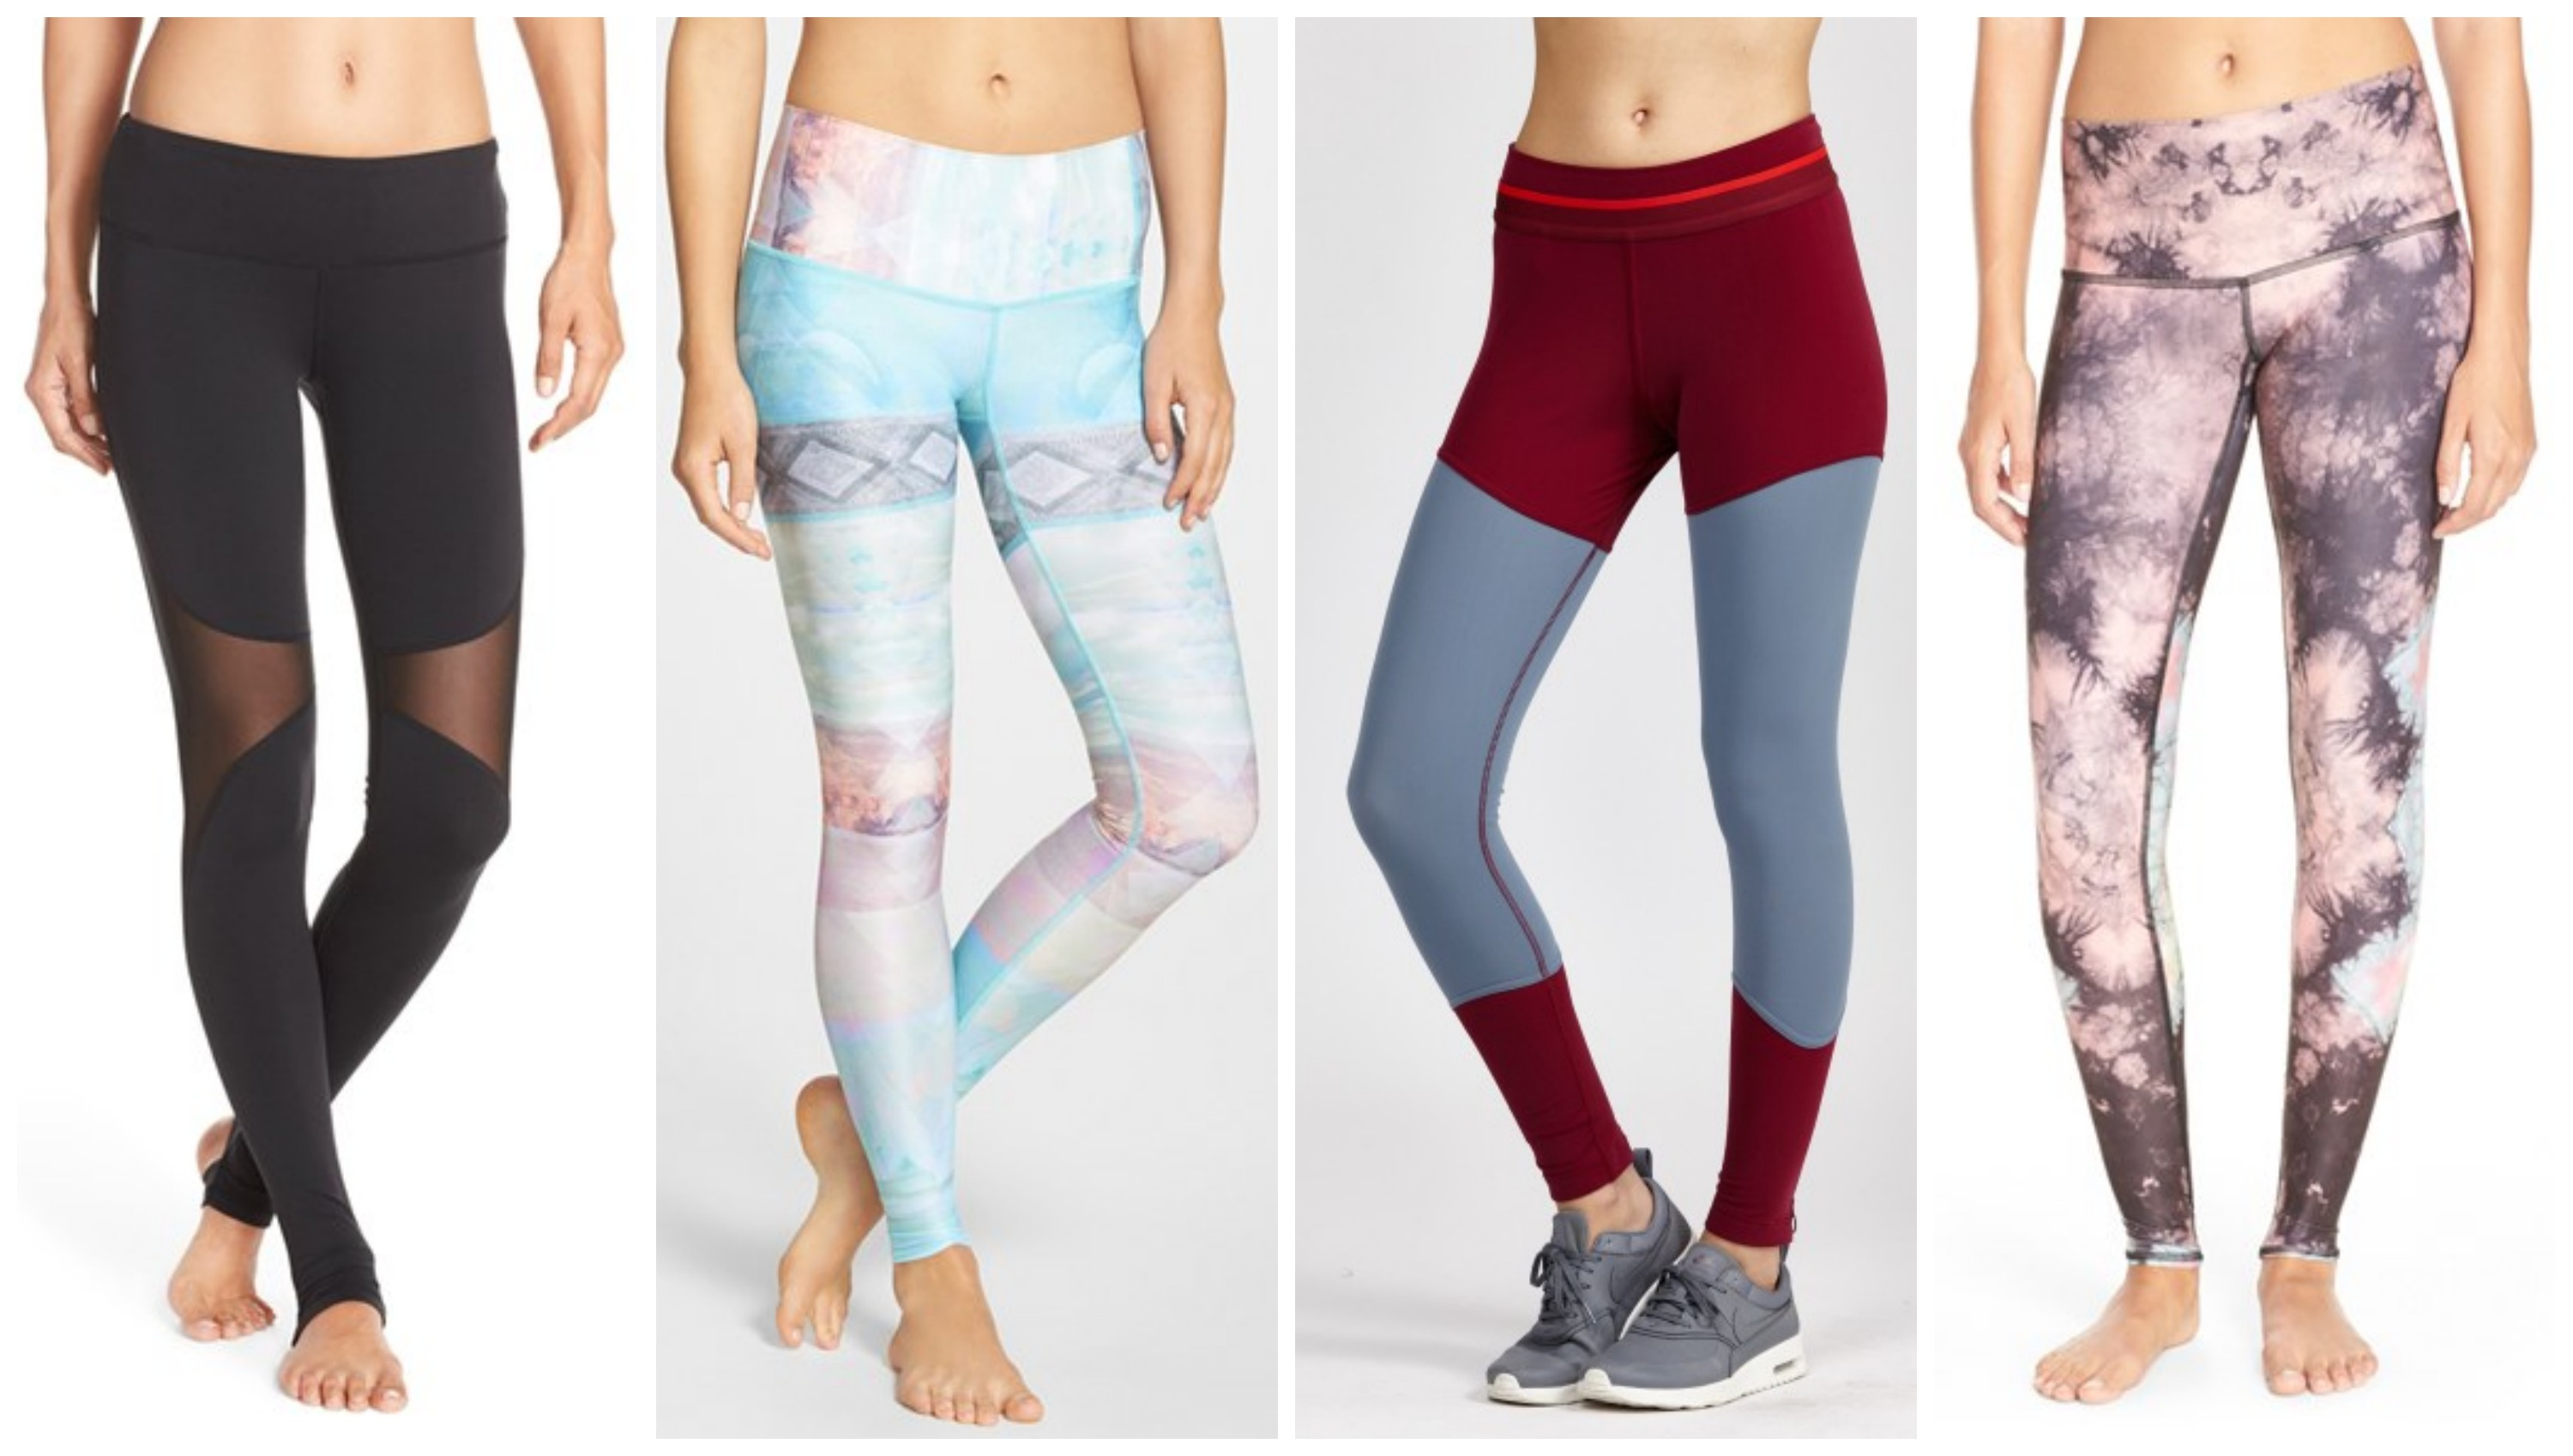 So many leggings options!